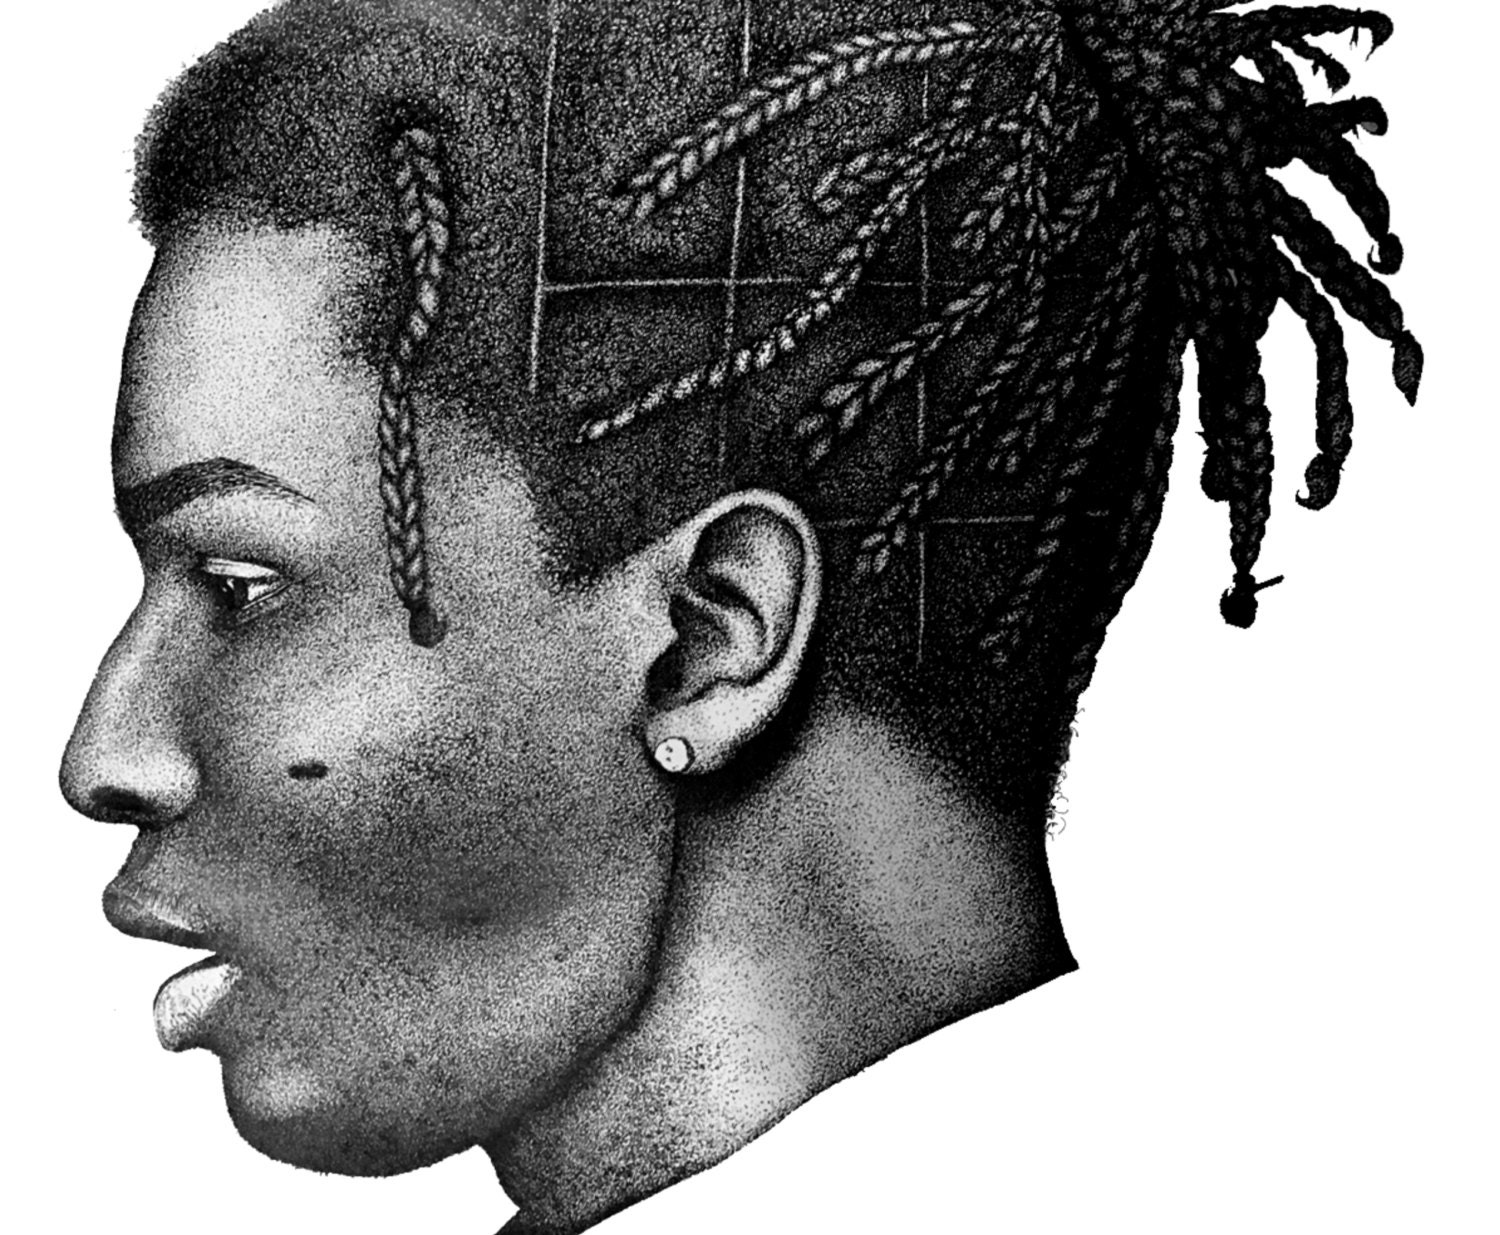 asap rocky pen and ink stipple drawing